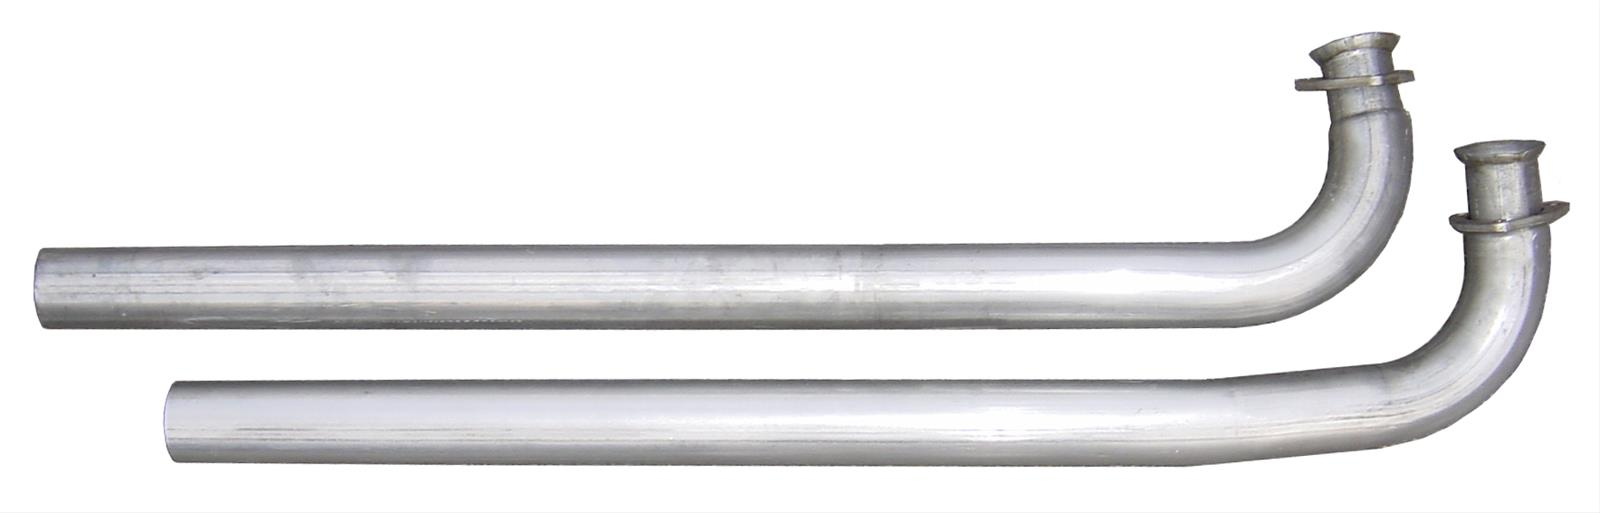 "Pypes Exhaust Downpipes Stainless Steel Natural 2.5/"" Dia Oldsmobile 442 Pair"